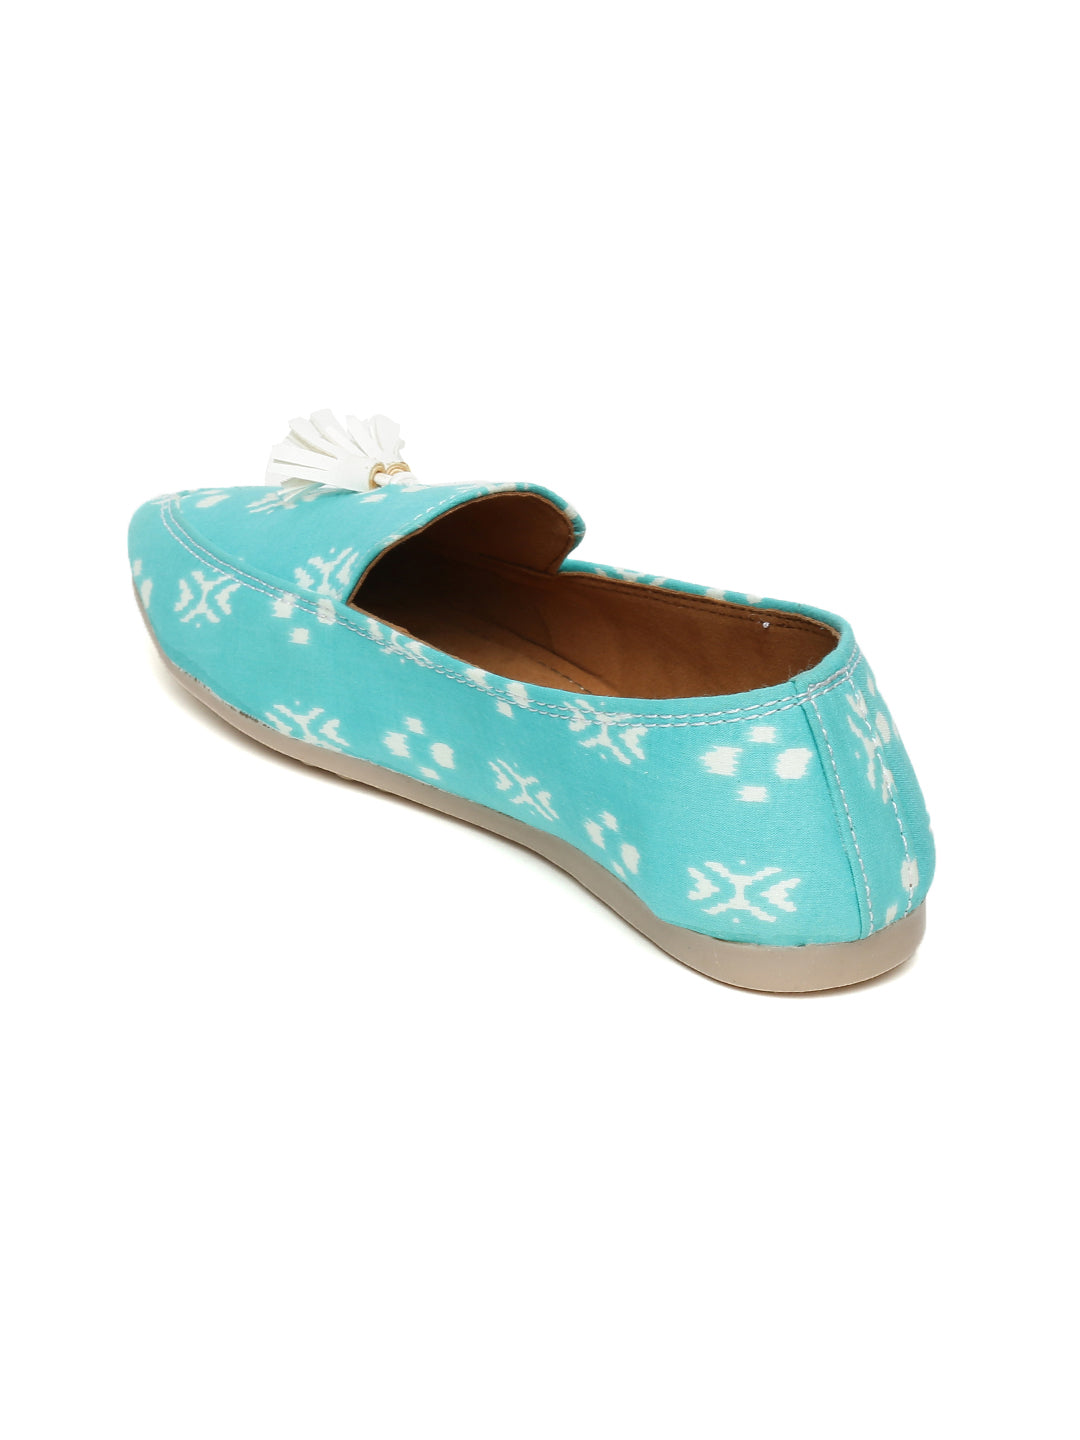 Turquoise Block Printed Loafers